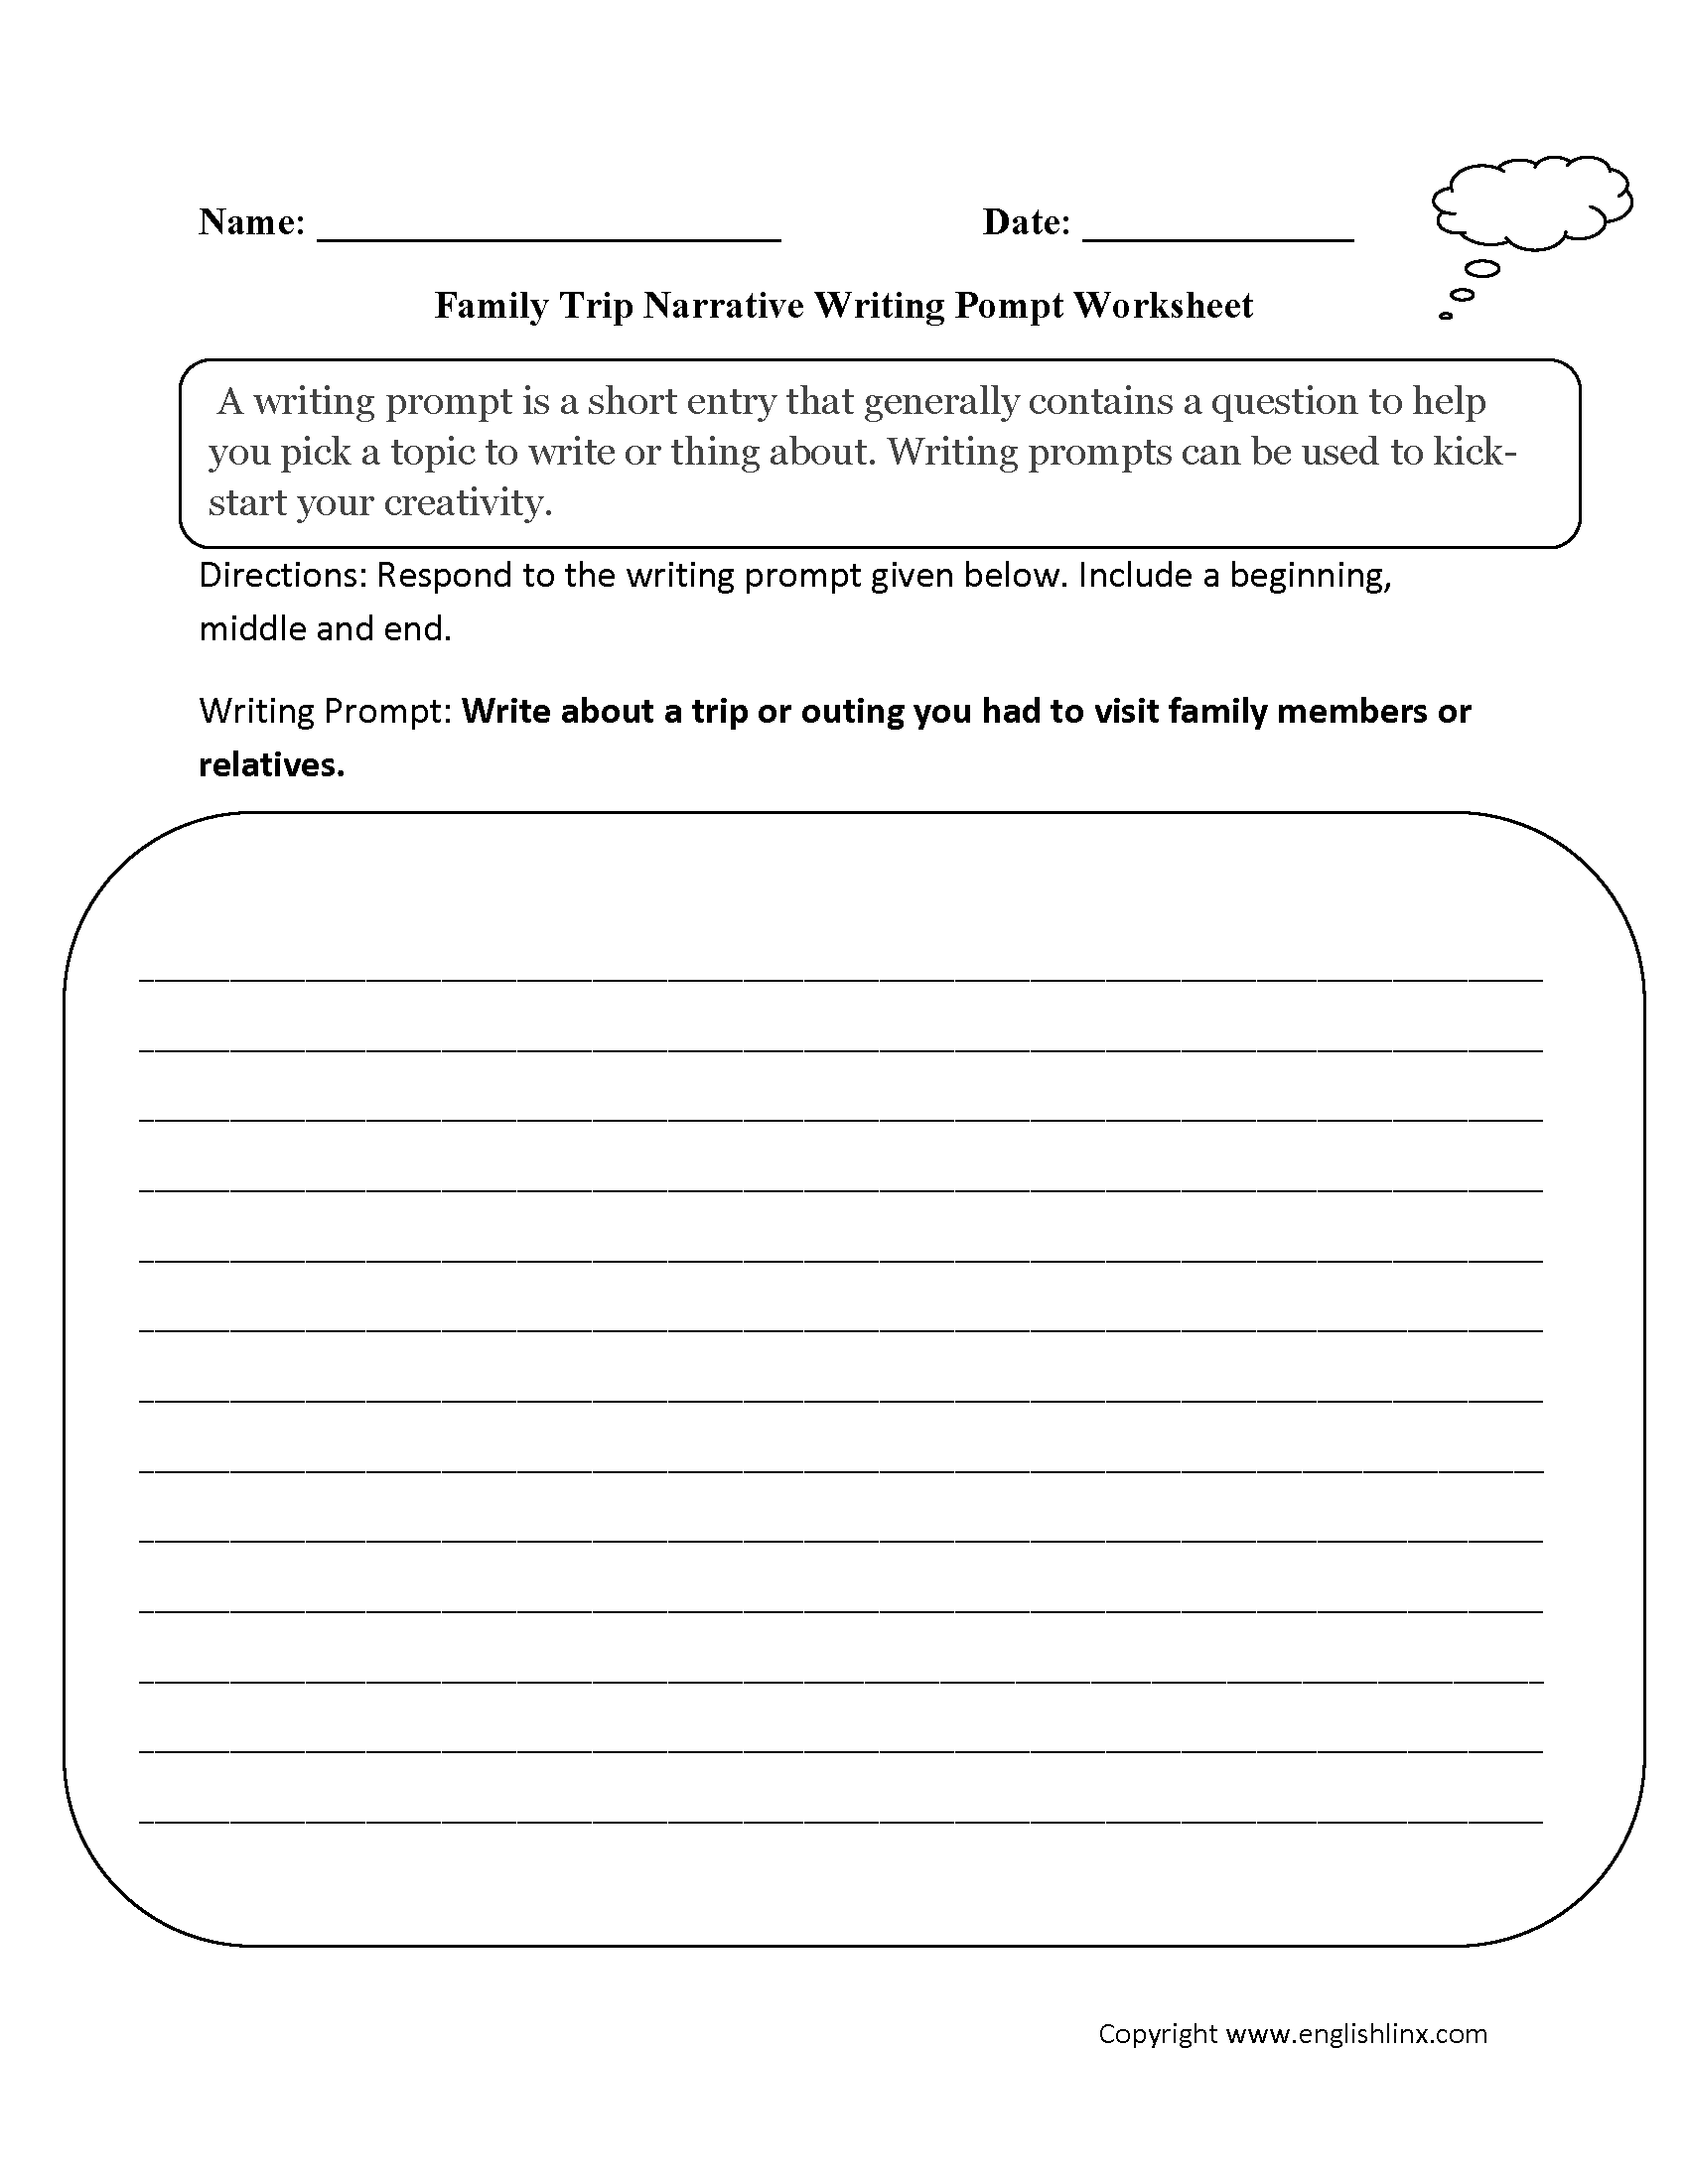 Worksheets Fourth Grade Writing Worksheets englishlinx com writing prompts worksheets worksheets